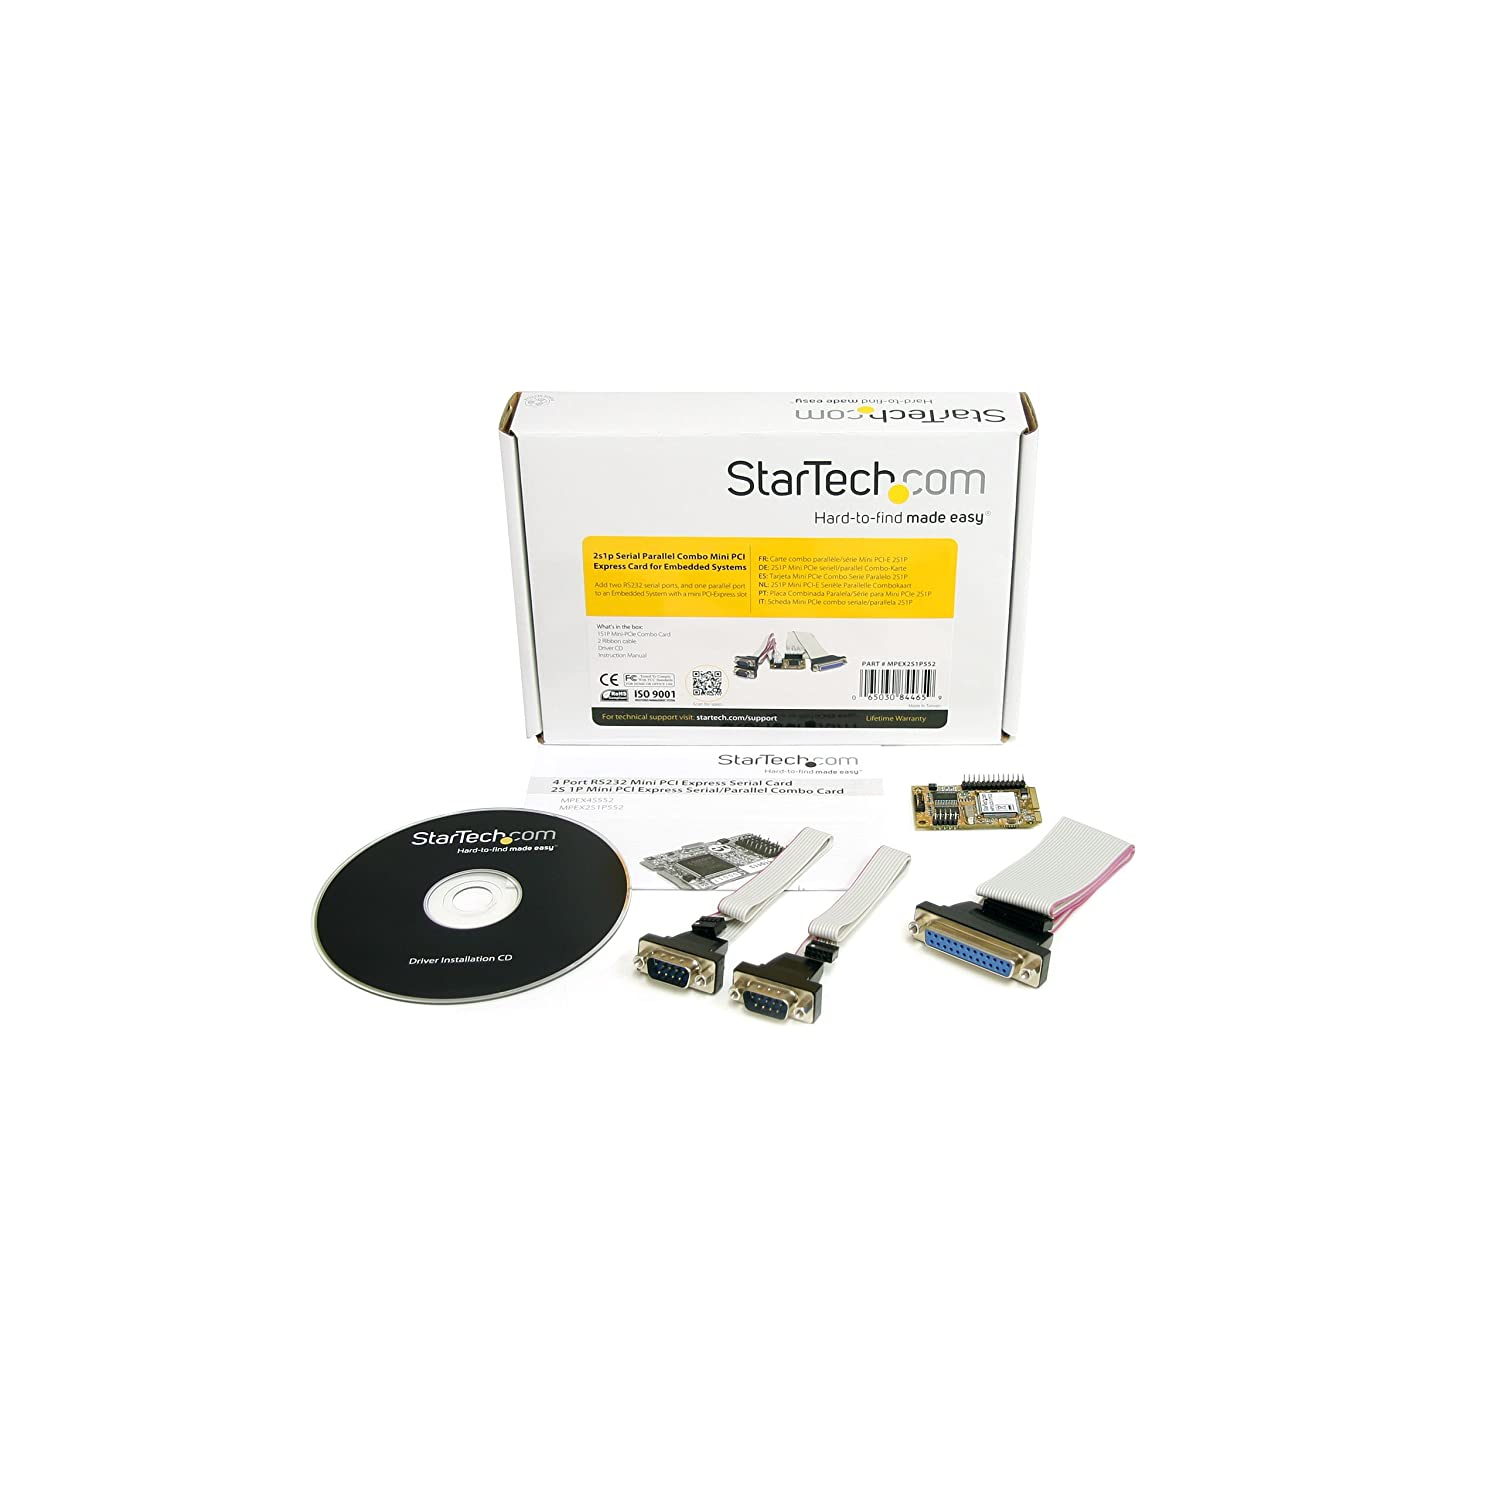 StarTech.com 2s1p Serial Parallel Combo Mini PCI Express Card for Embedded Systems (MPEX2S1P552)